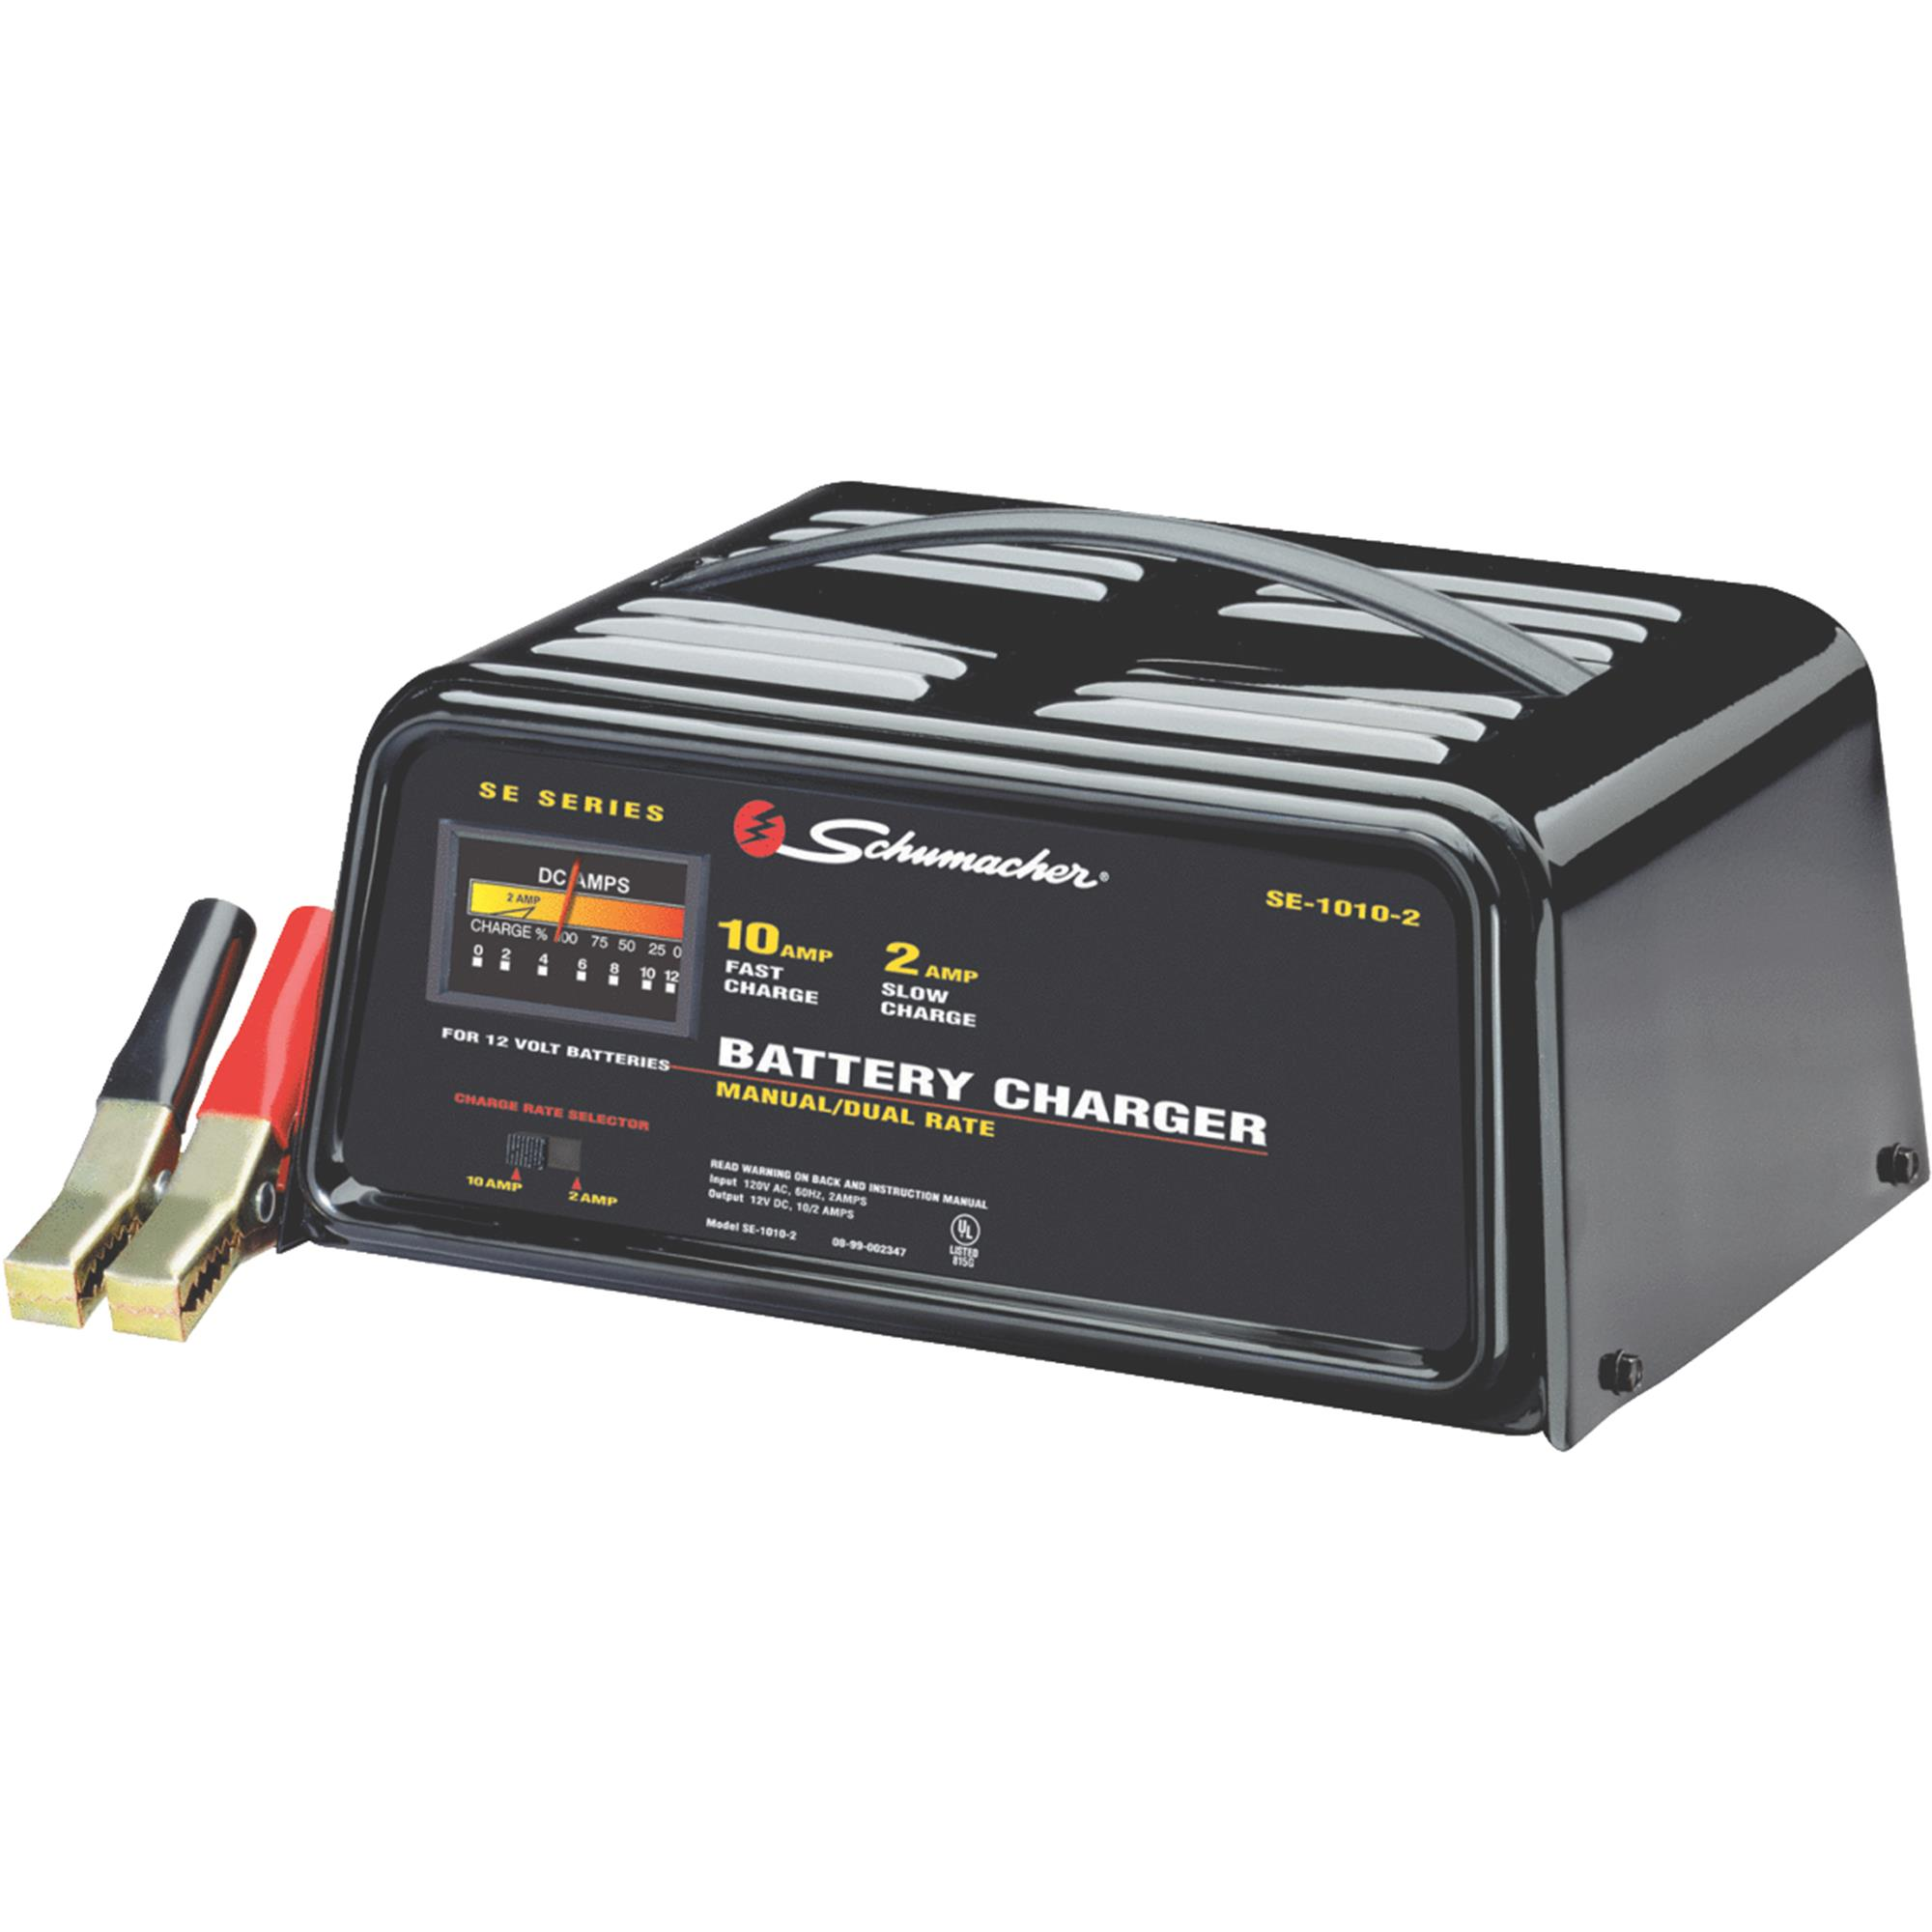 Schumacher 10/2 Amp Dual-Rate Manual Charger